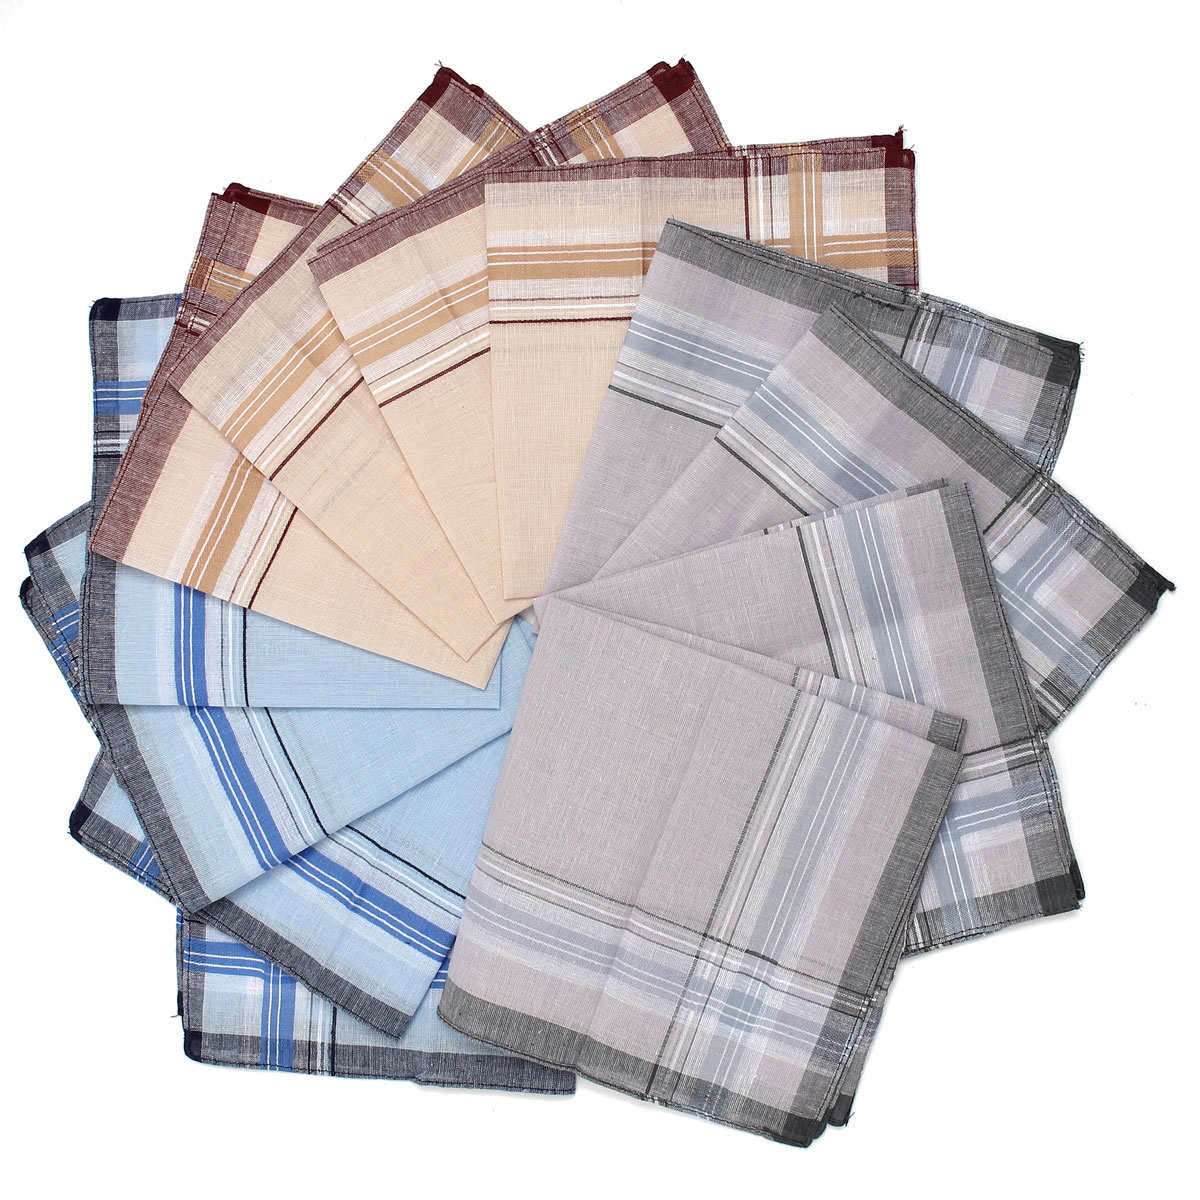 12 Pcs Plaid Square Handkerchiefs Men Cotton 36x36cm Grid Men's Business Chest Towel Pockets Hanky Handkerchief Fore Male Hankie